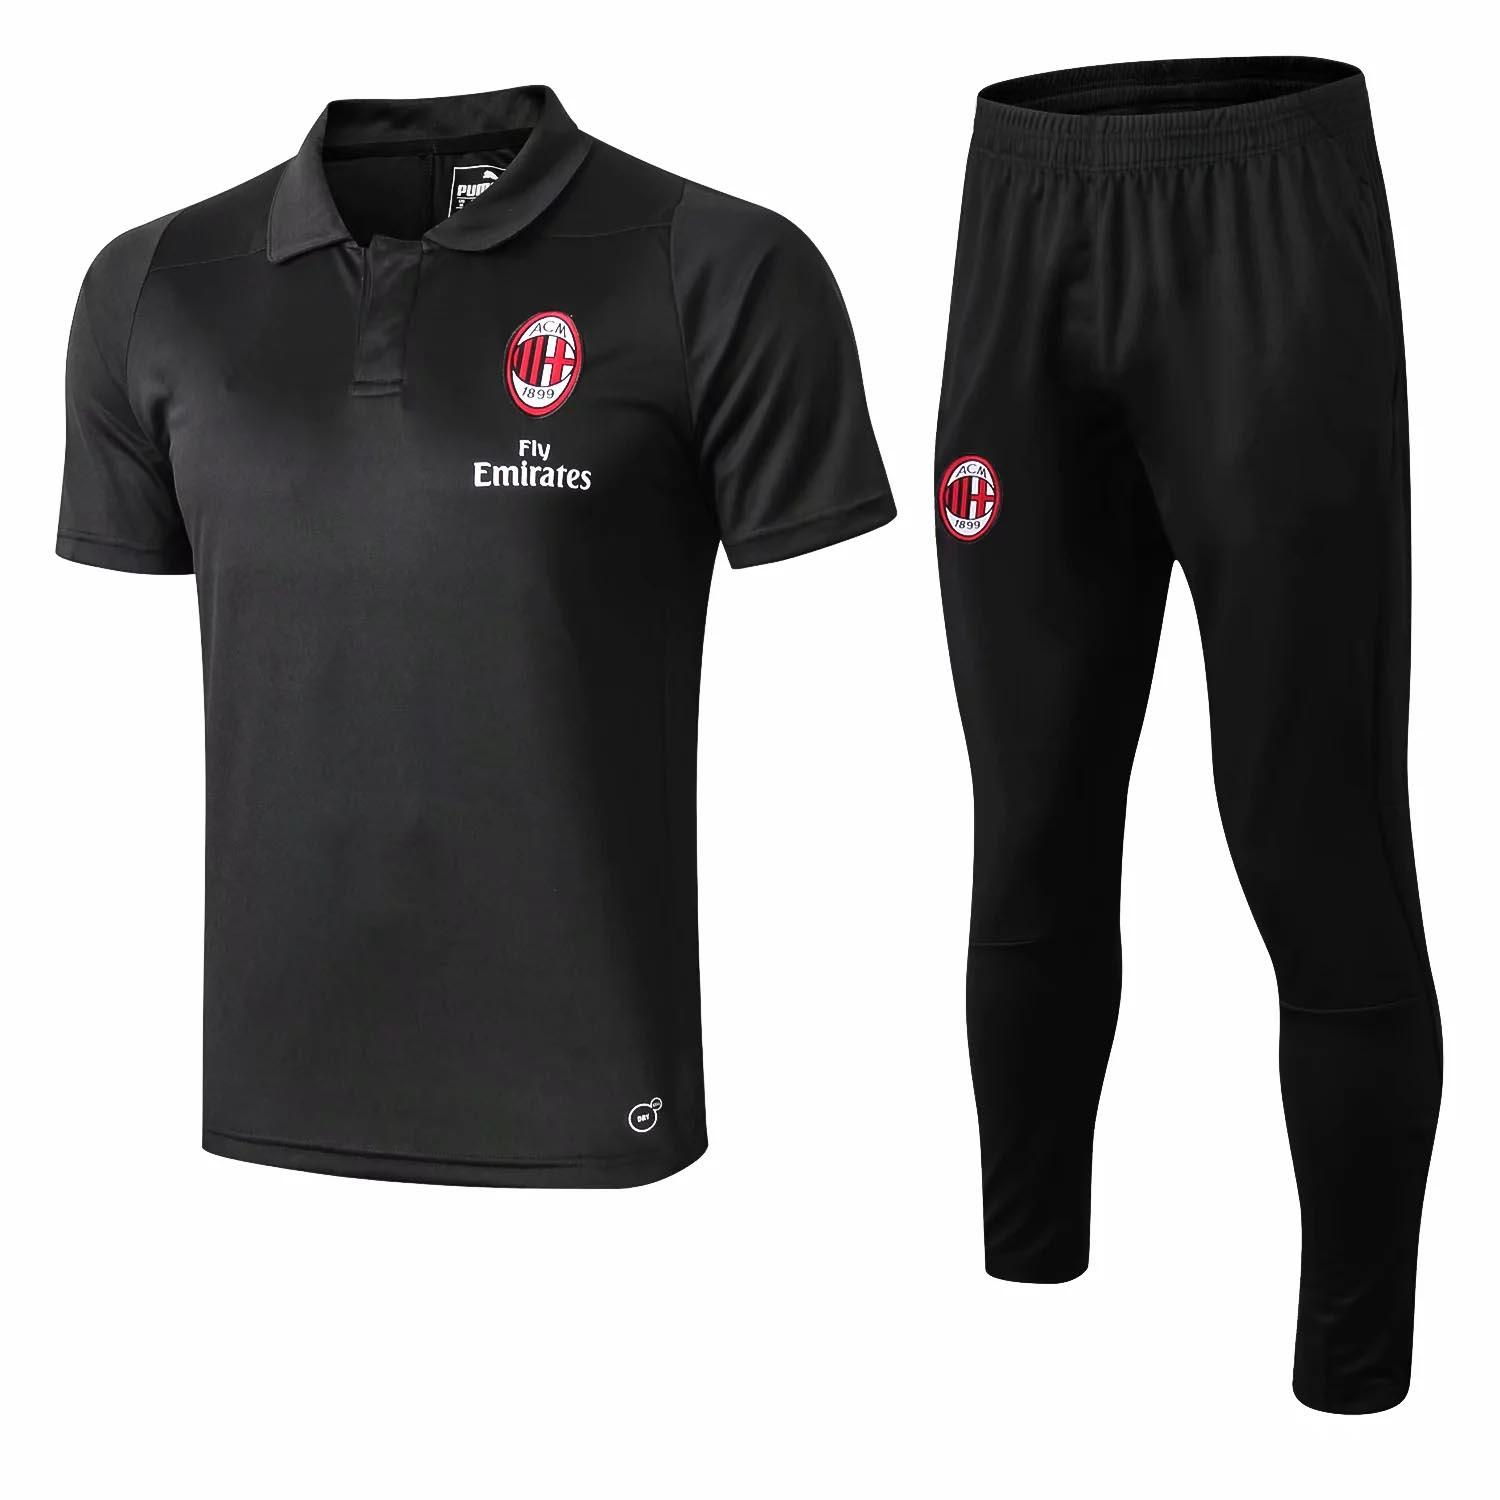 19 20 huality AC Soccer Jersey adult short sleeve kit 18 19 Milan HIGUAIN Soccer Shirt KAKA training suit CALHANOGLU BONUCCI football shirt